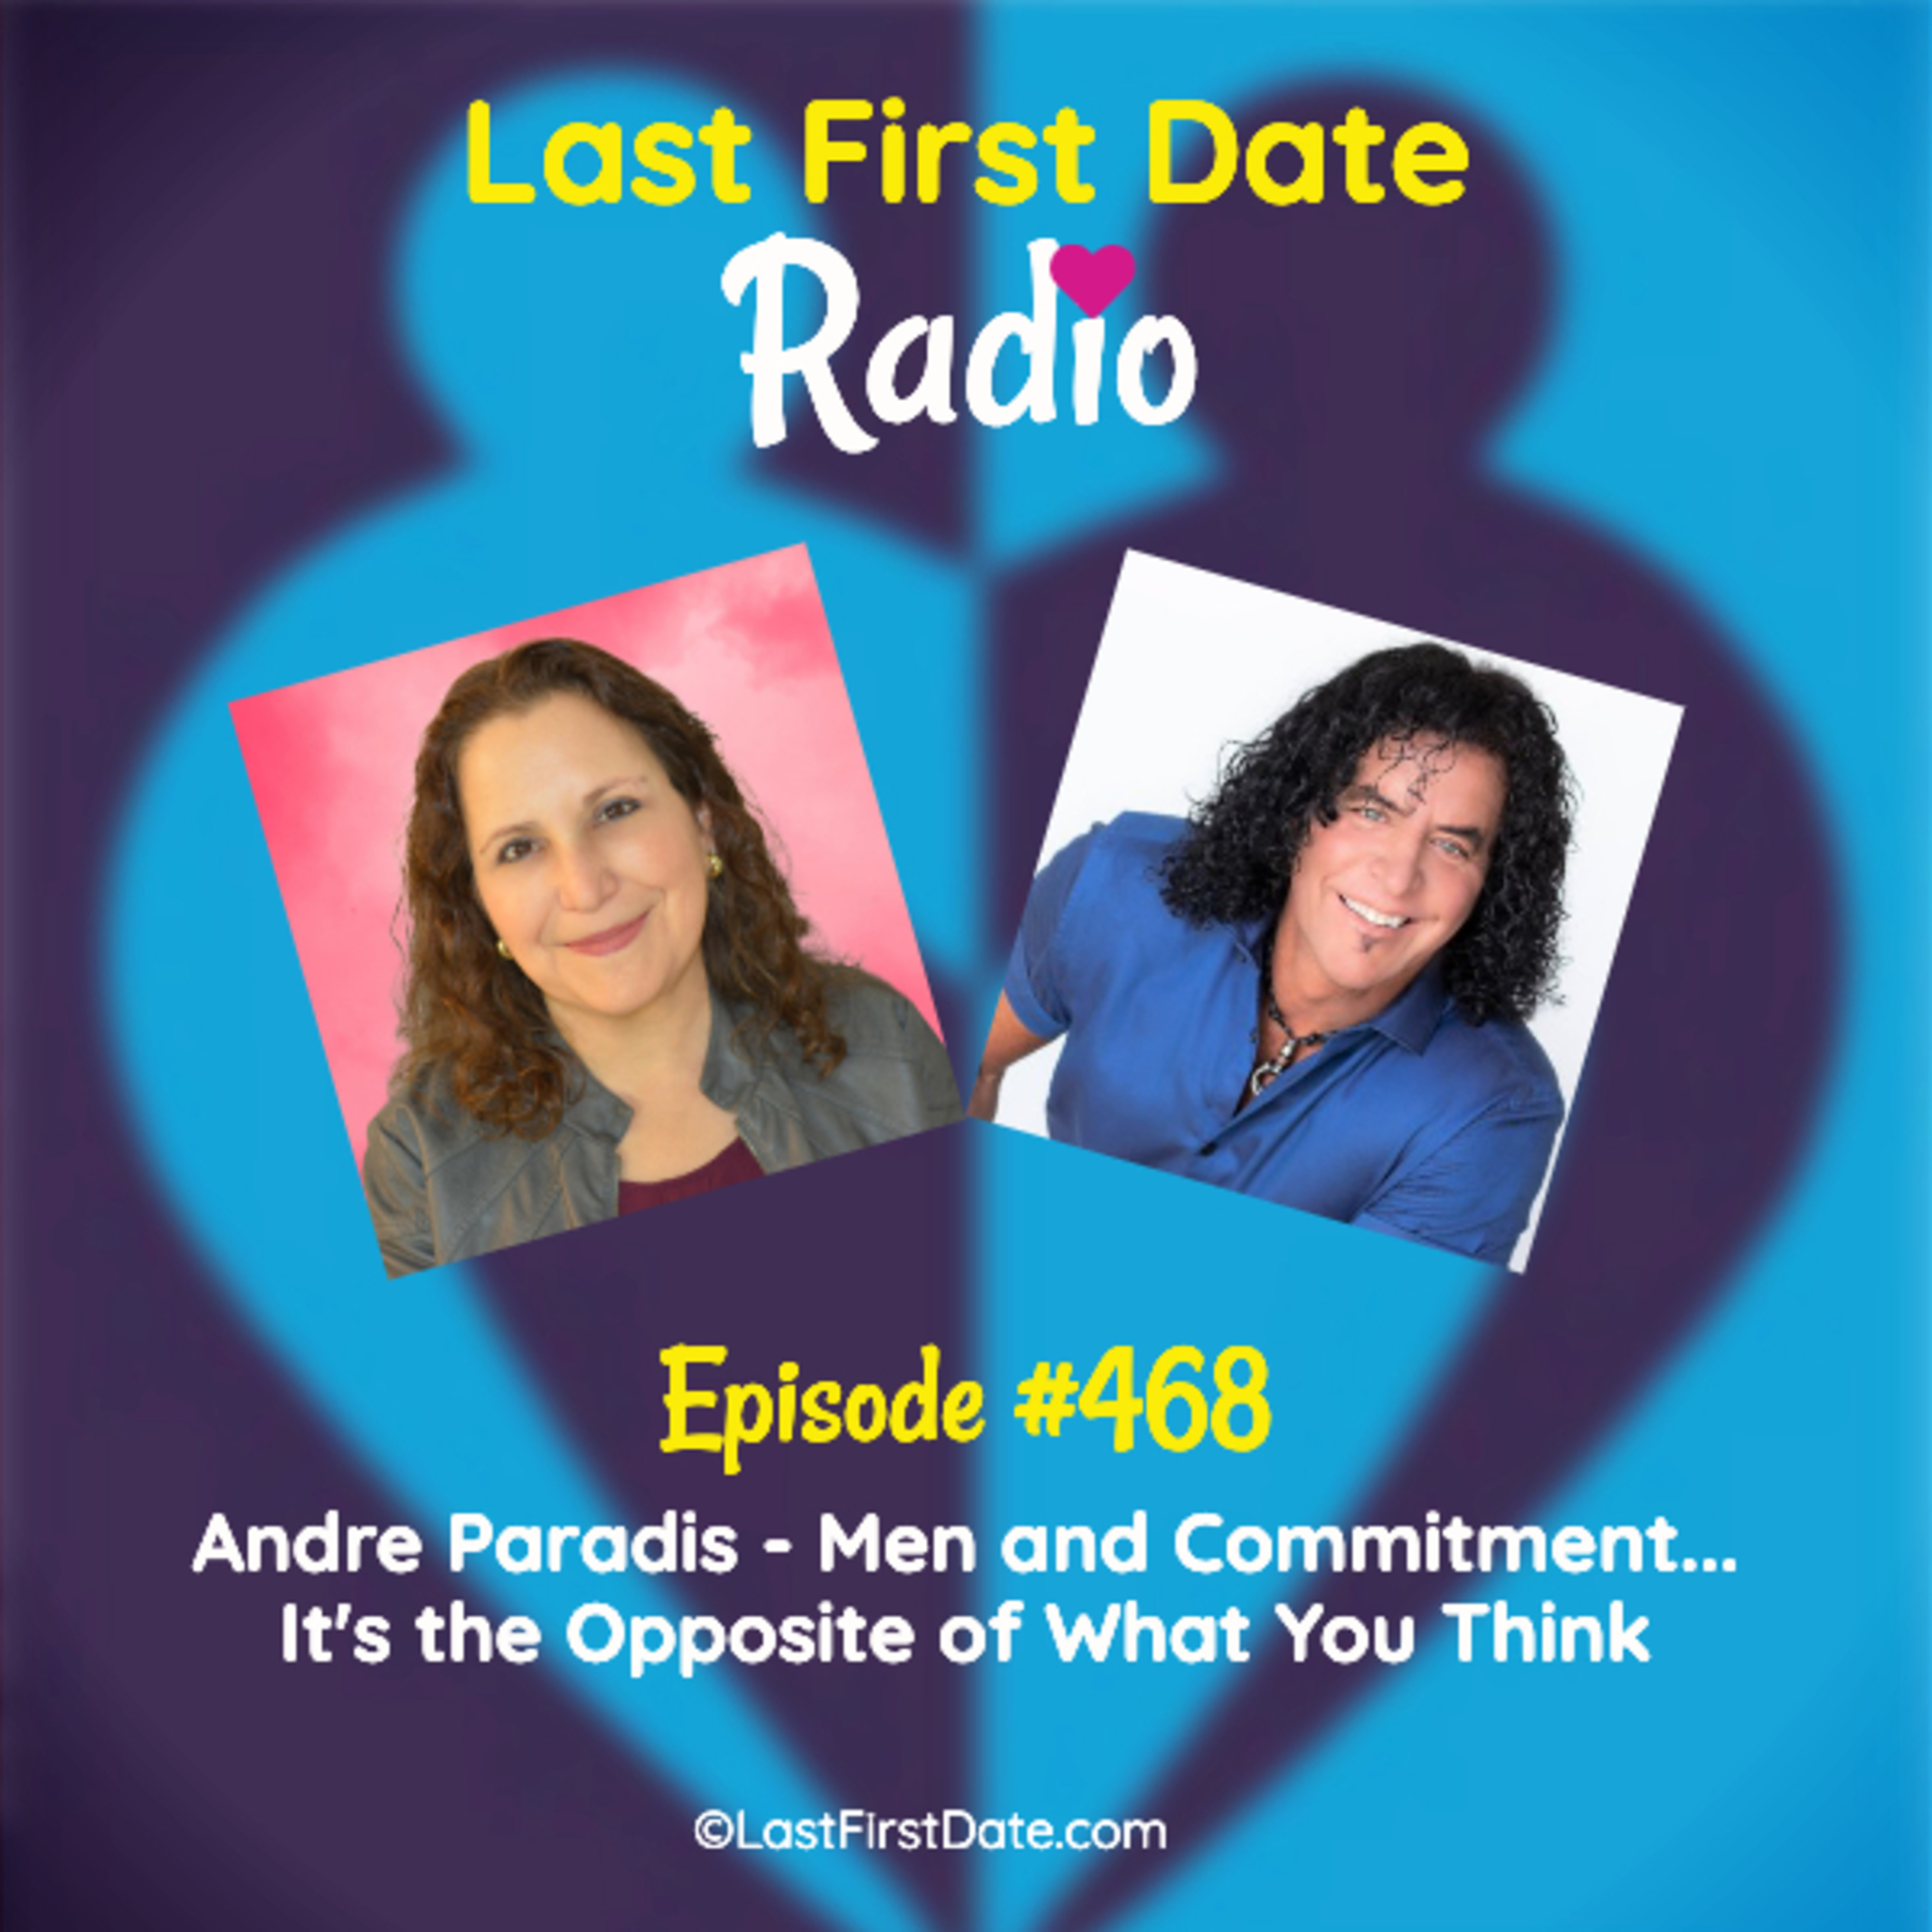 Last First Date Radio - EP 468: Andre Paradis - Men and Commitment...It's the Opposite of What You Think